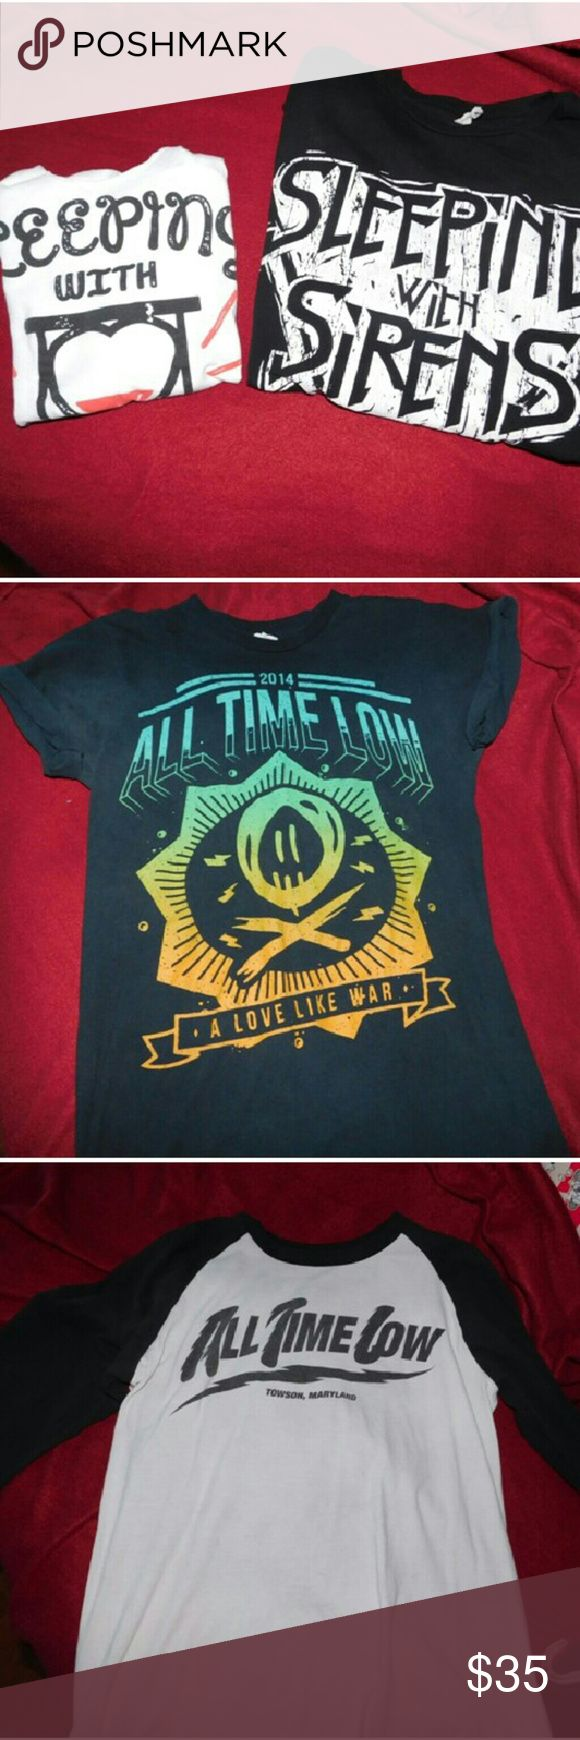 Band Shirt Bundle Sleeping with sirens all time lo Four band shirts. Two sws two atl. Women's size large sws tank. Men's medium black sws t shirt. Men's size medium atl baseball tee. Men's size medium atl black t shirt. Both atl shirts are very loved and worn so selling for very cheap alongside the ses shirts. Both sws shirts are in excellent condition. Barely worn at all. :) message me if you're interested Hot Topic Tops Tees - Short Sleeve